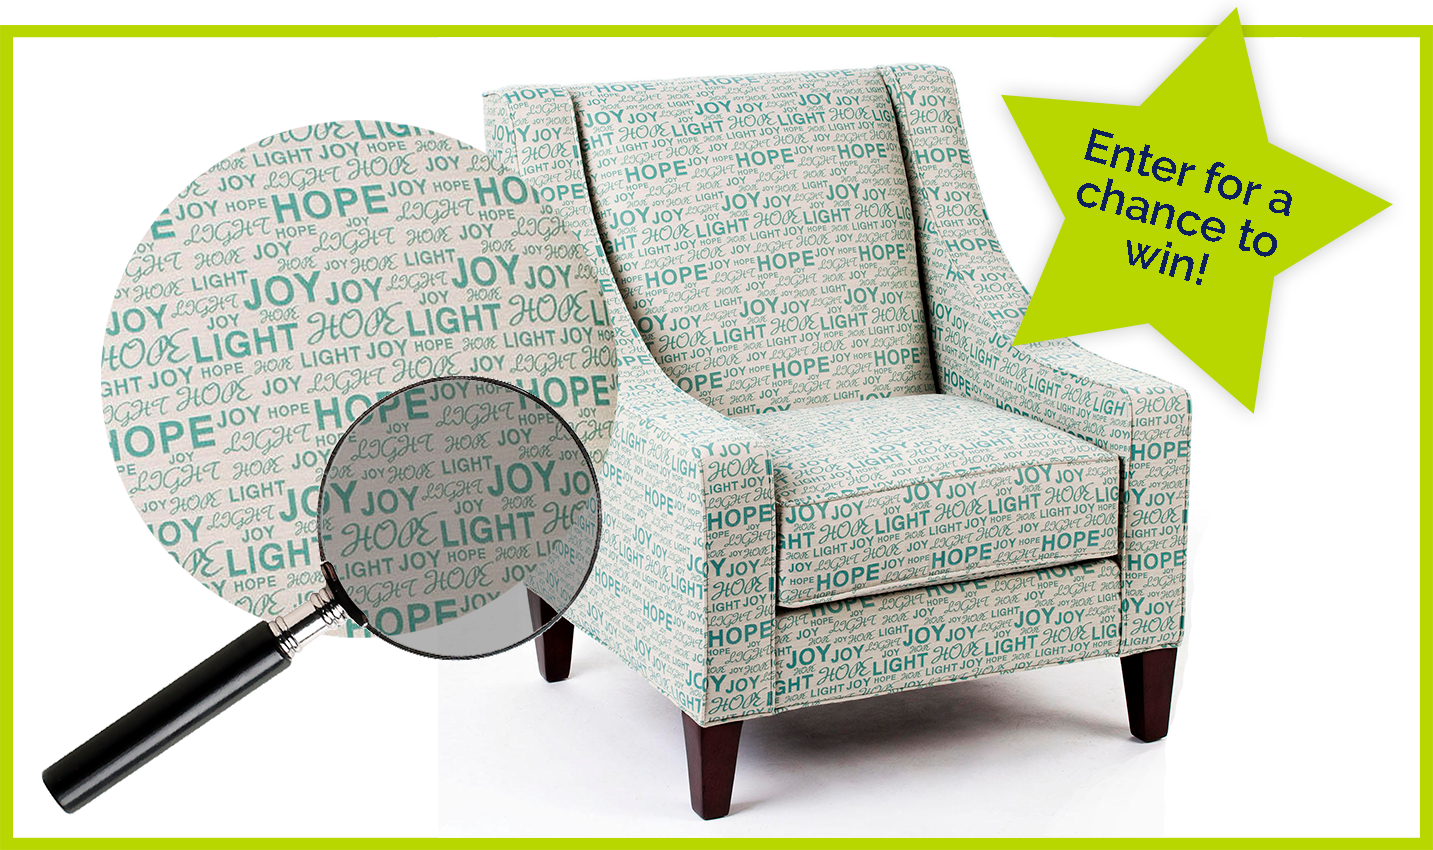 positive thoughts chair contest